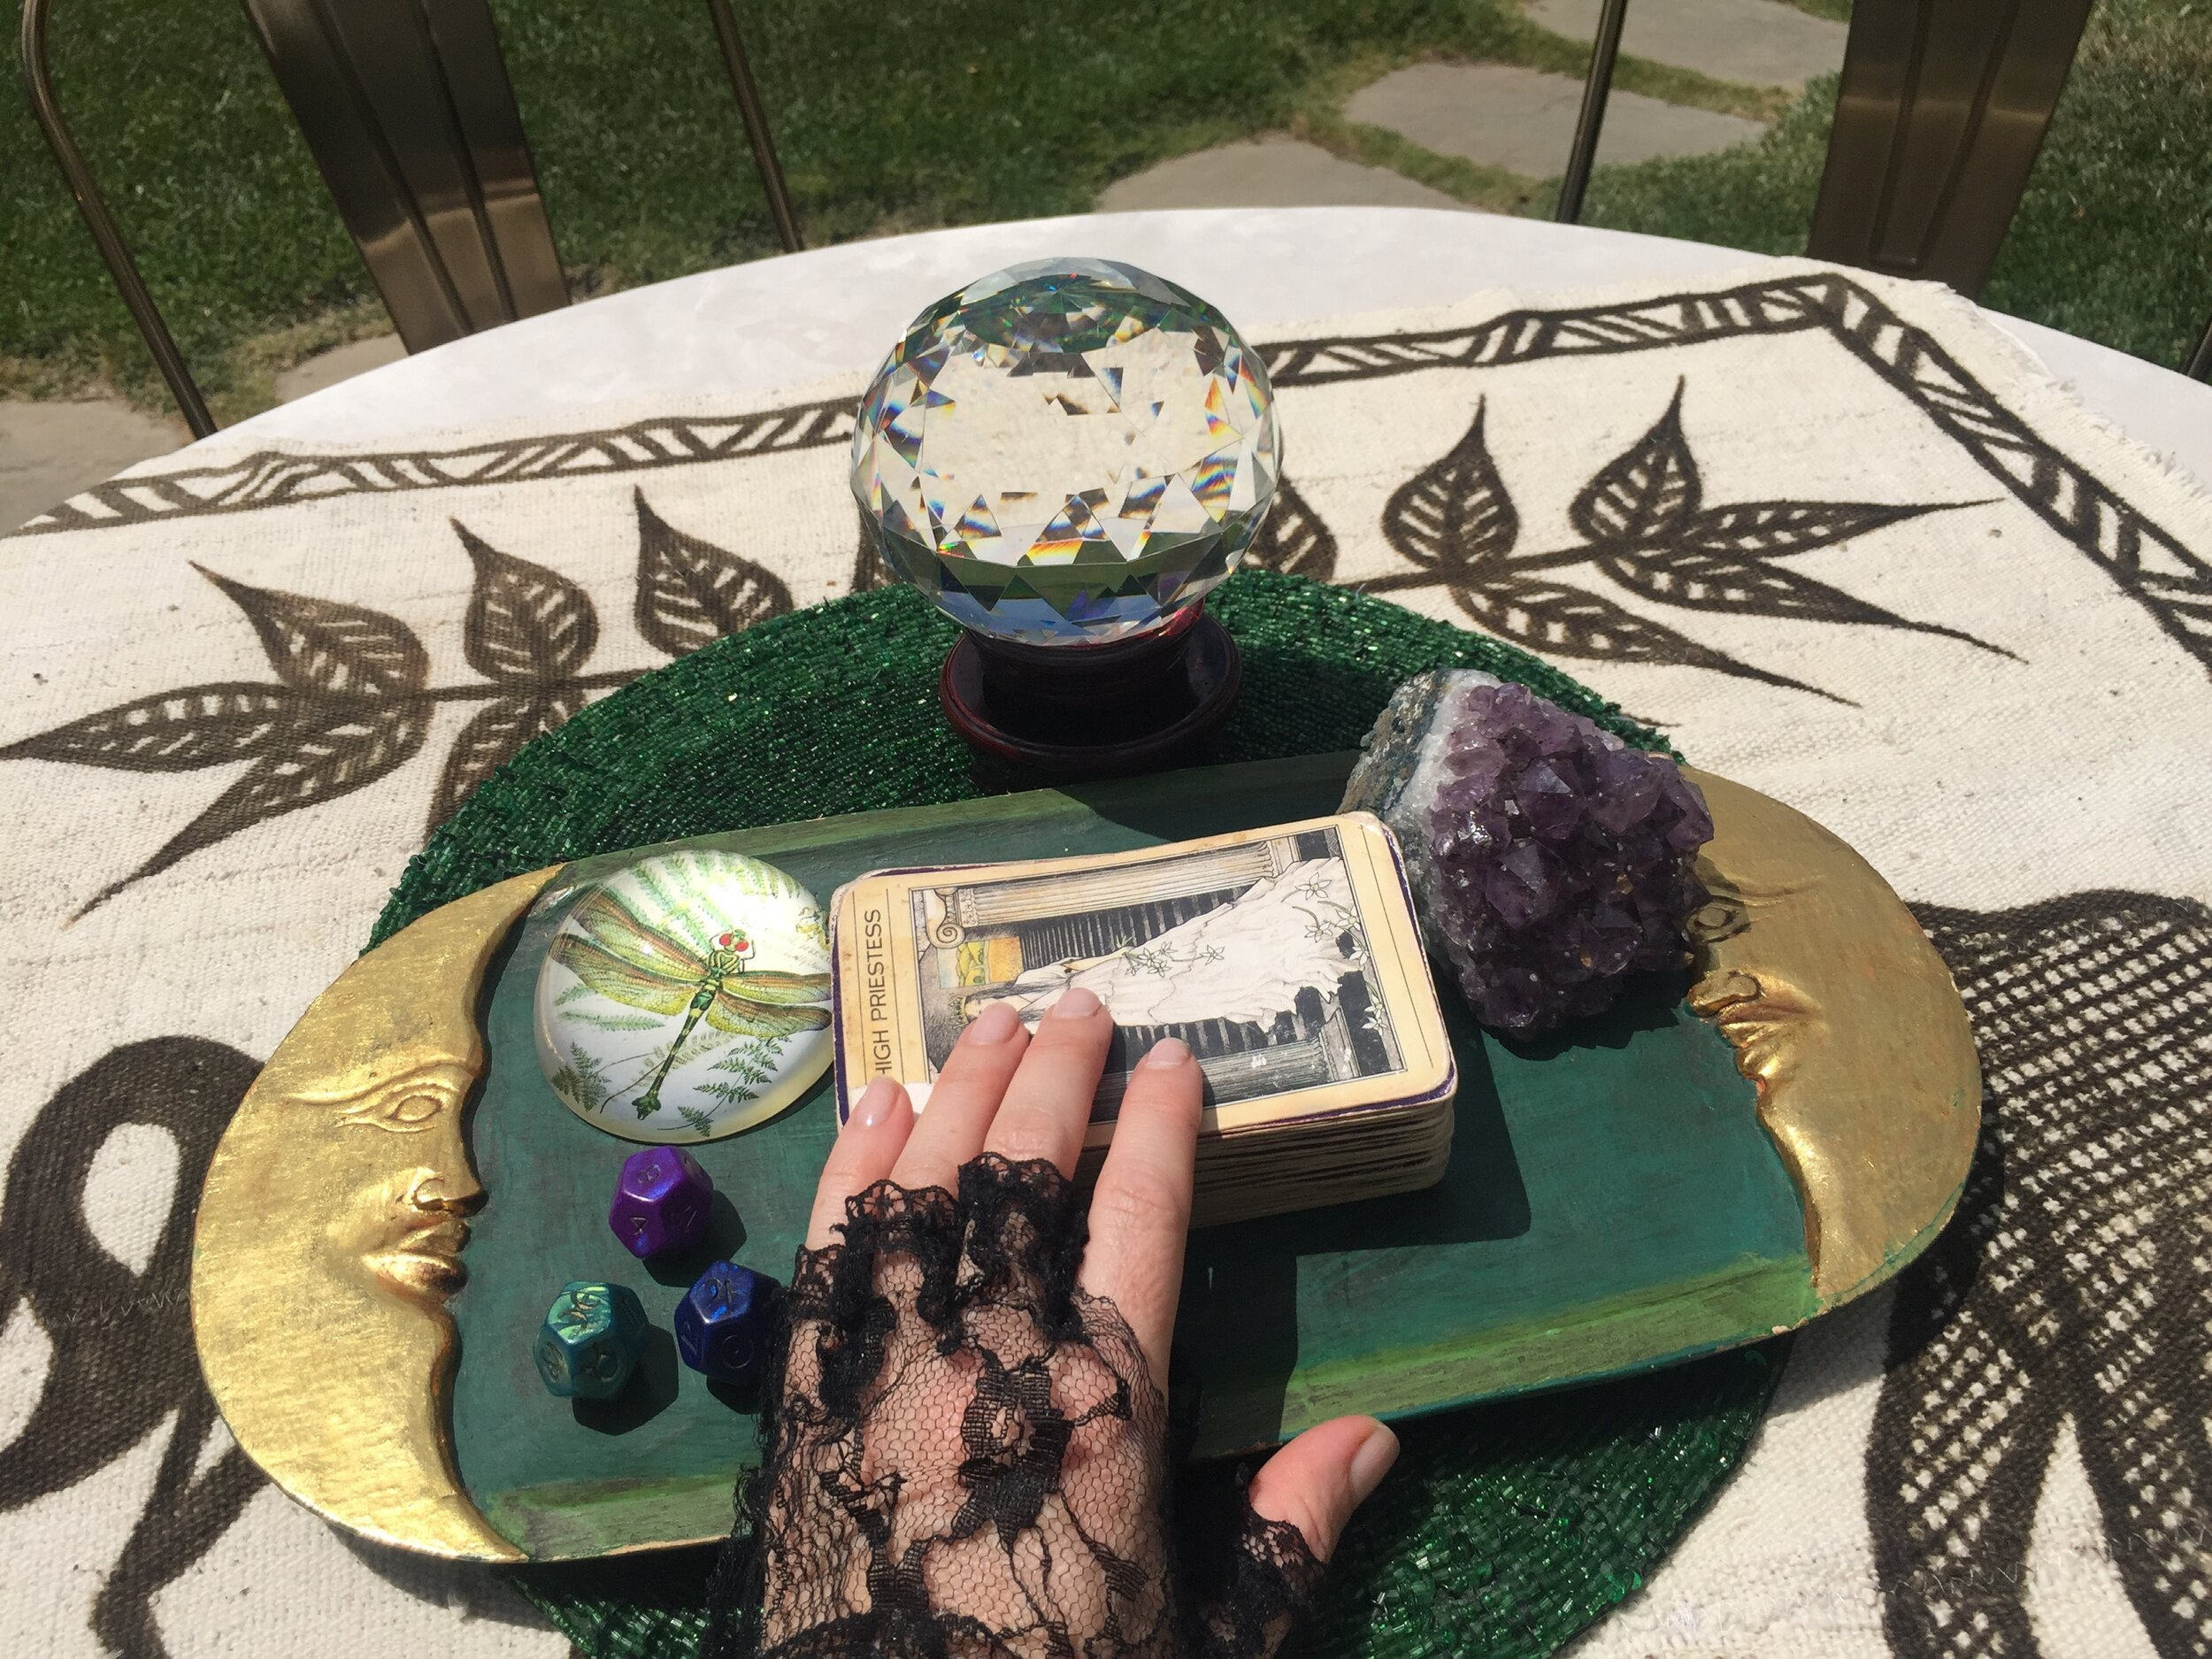 Tarot Readings for Individuals - Questions + Answers for the High Priestess in Everyone